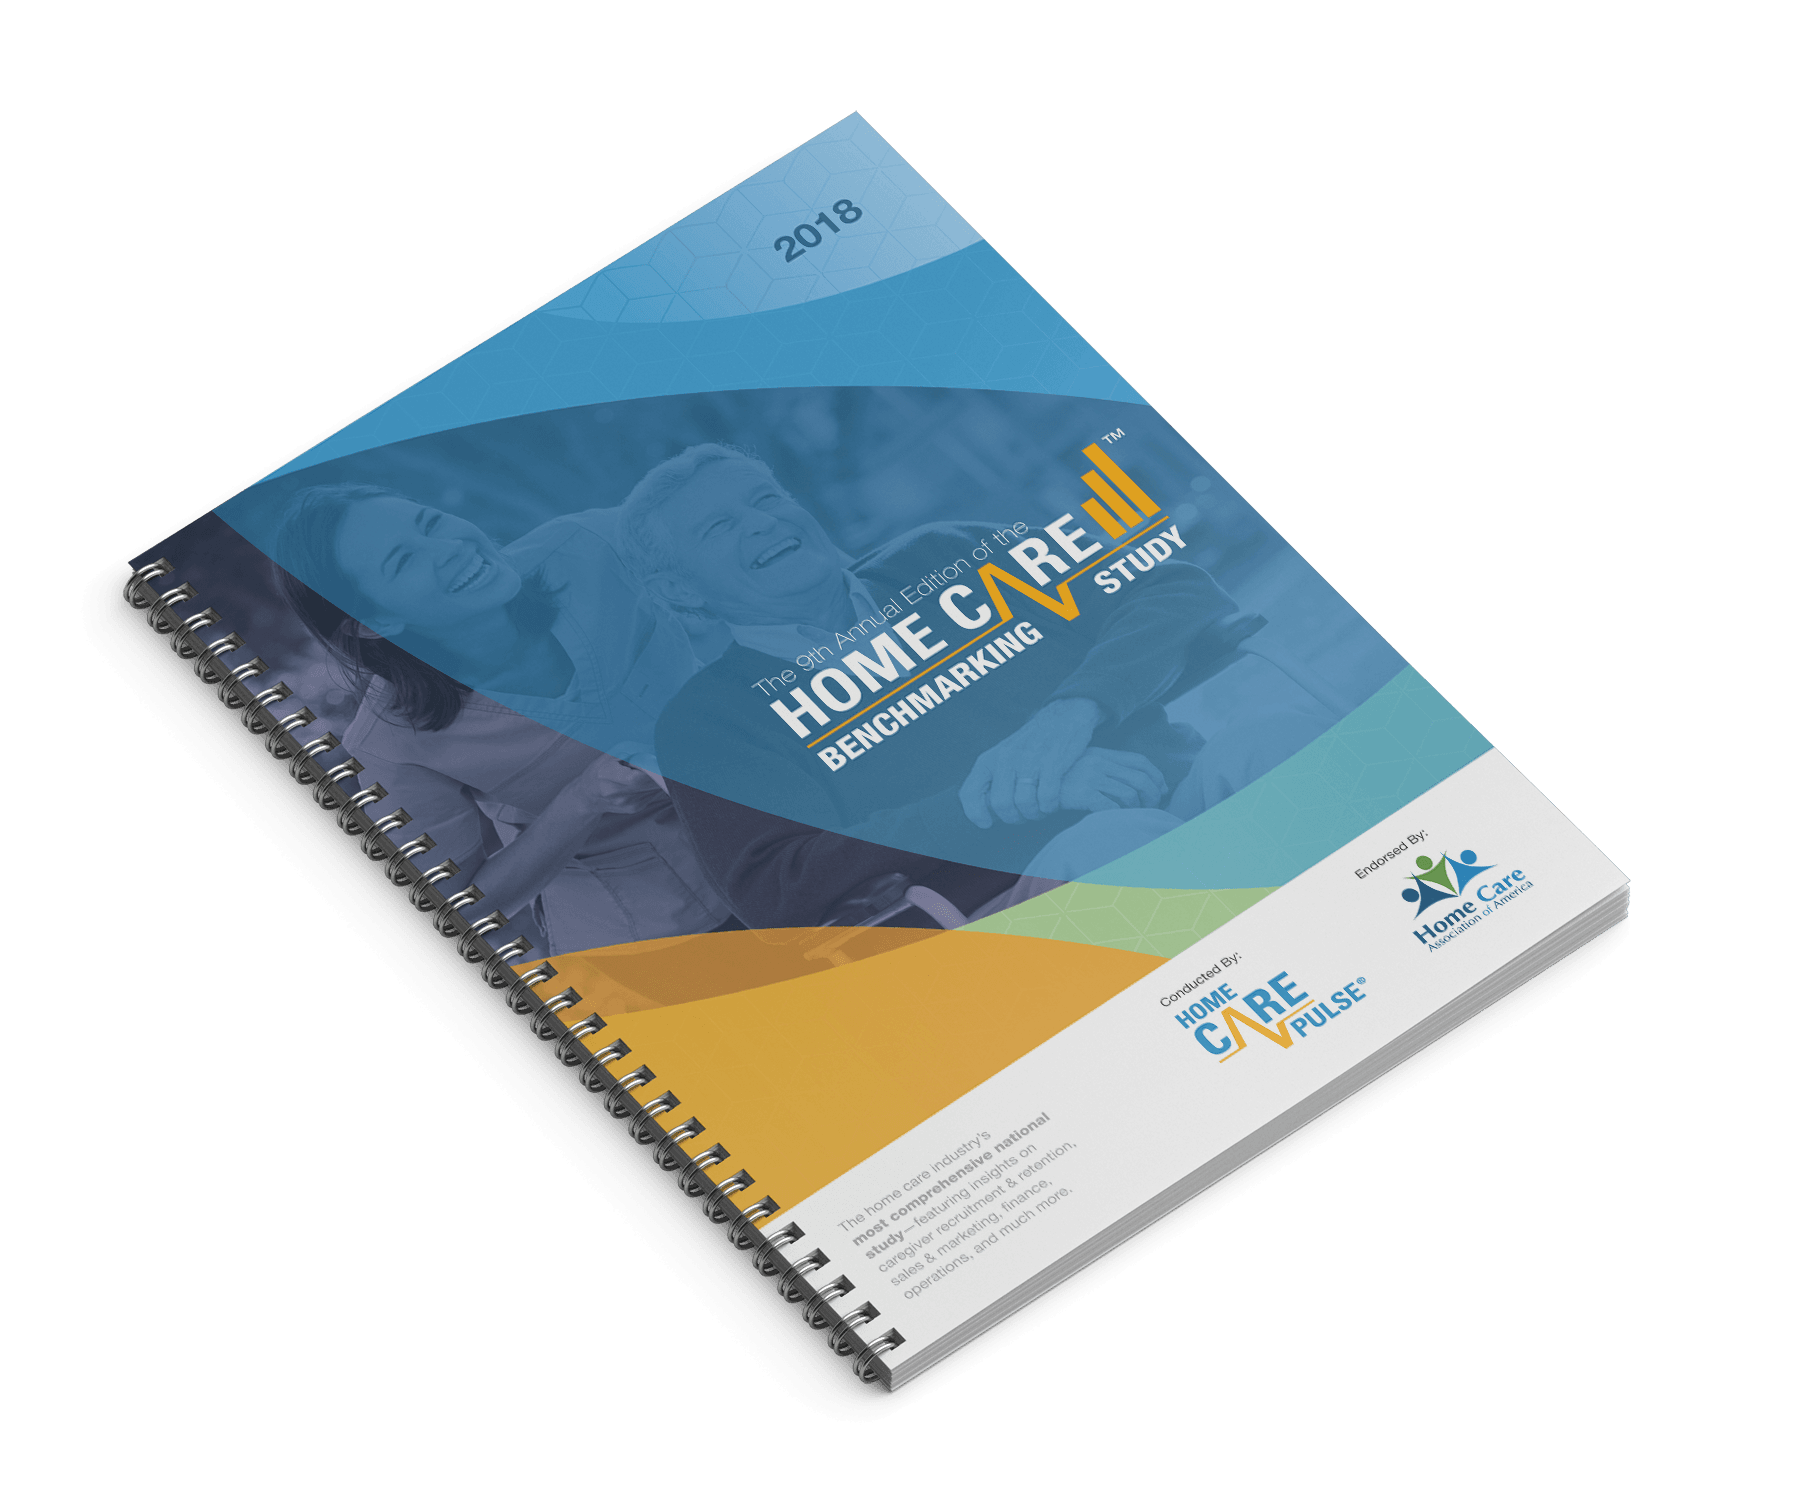 Pre-Order 2018 Home Care Pulse Benchmarking Study